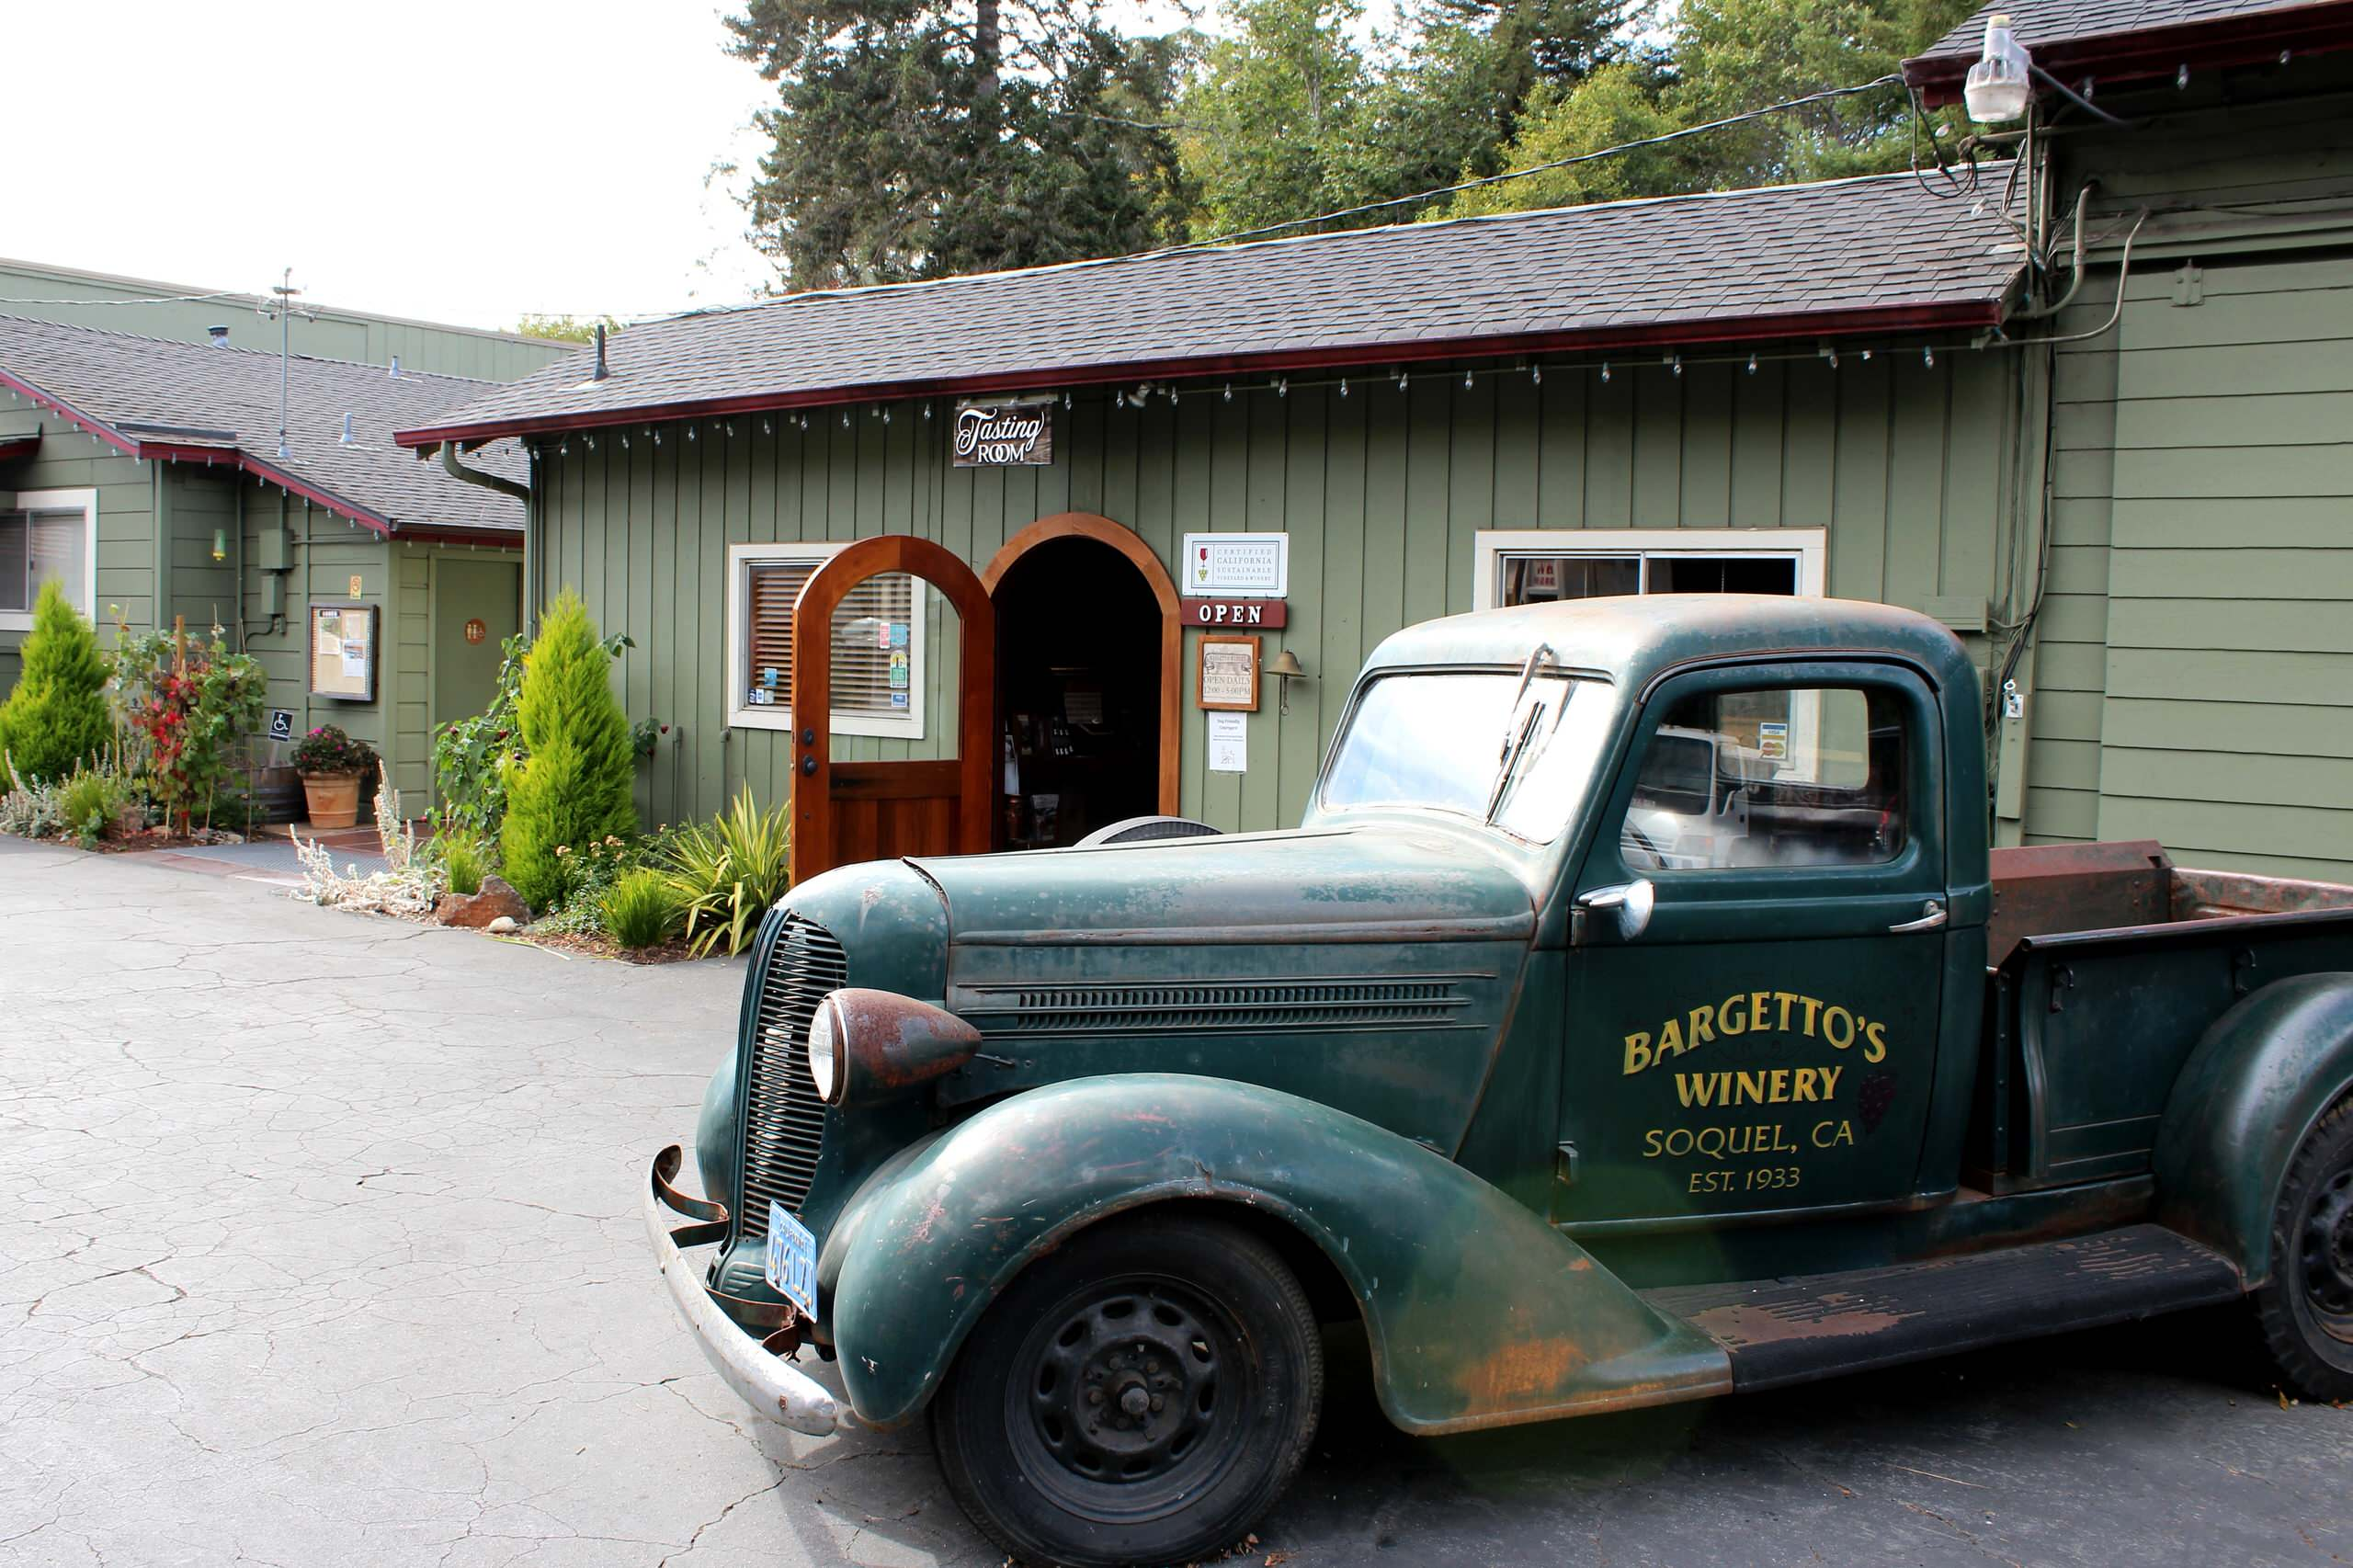 A Working Winery in Soquel